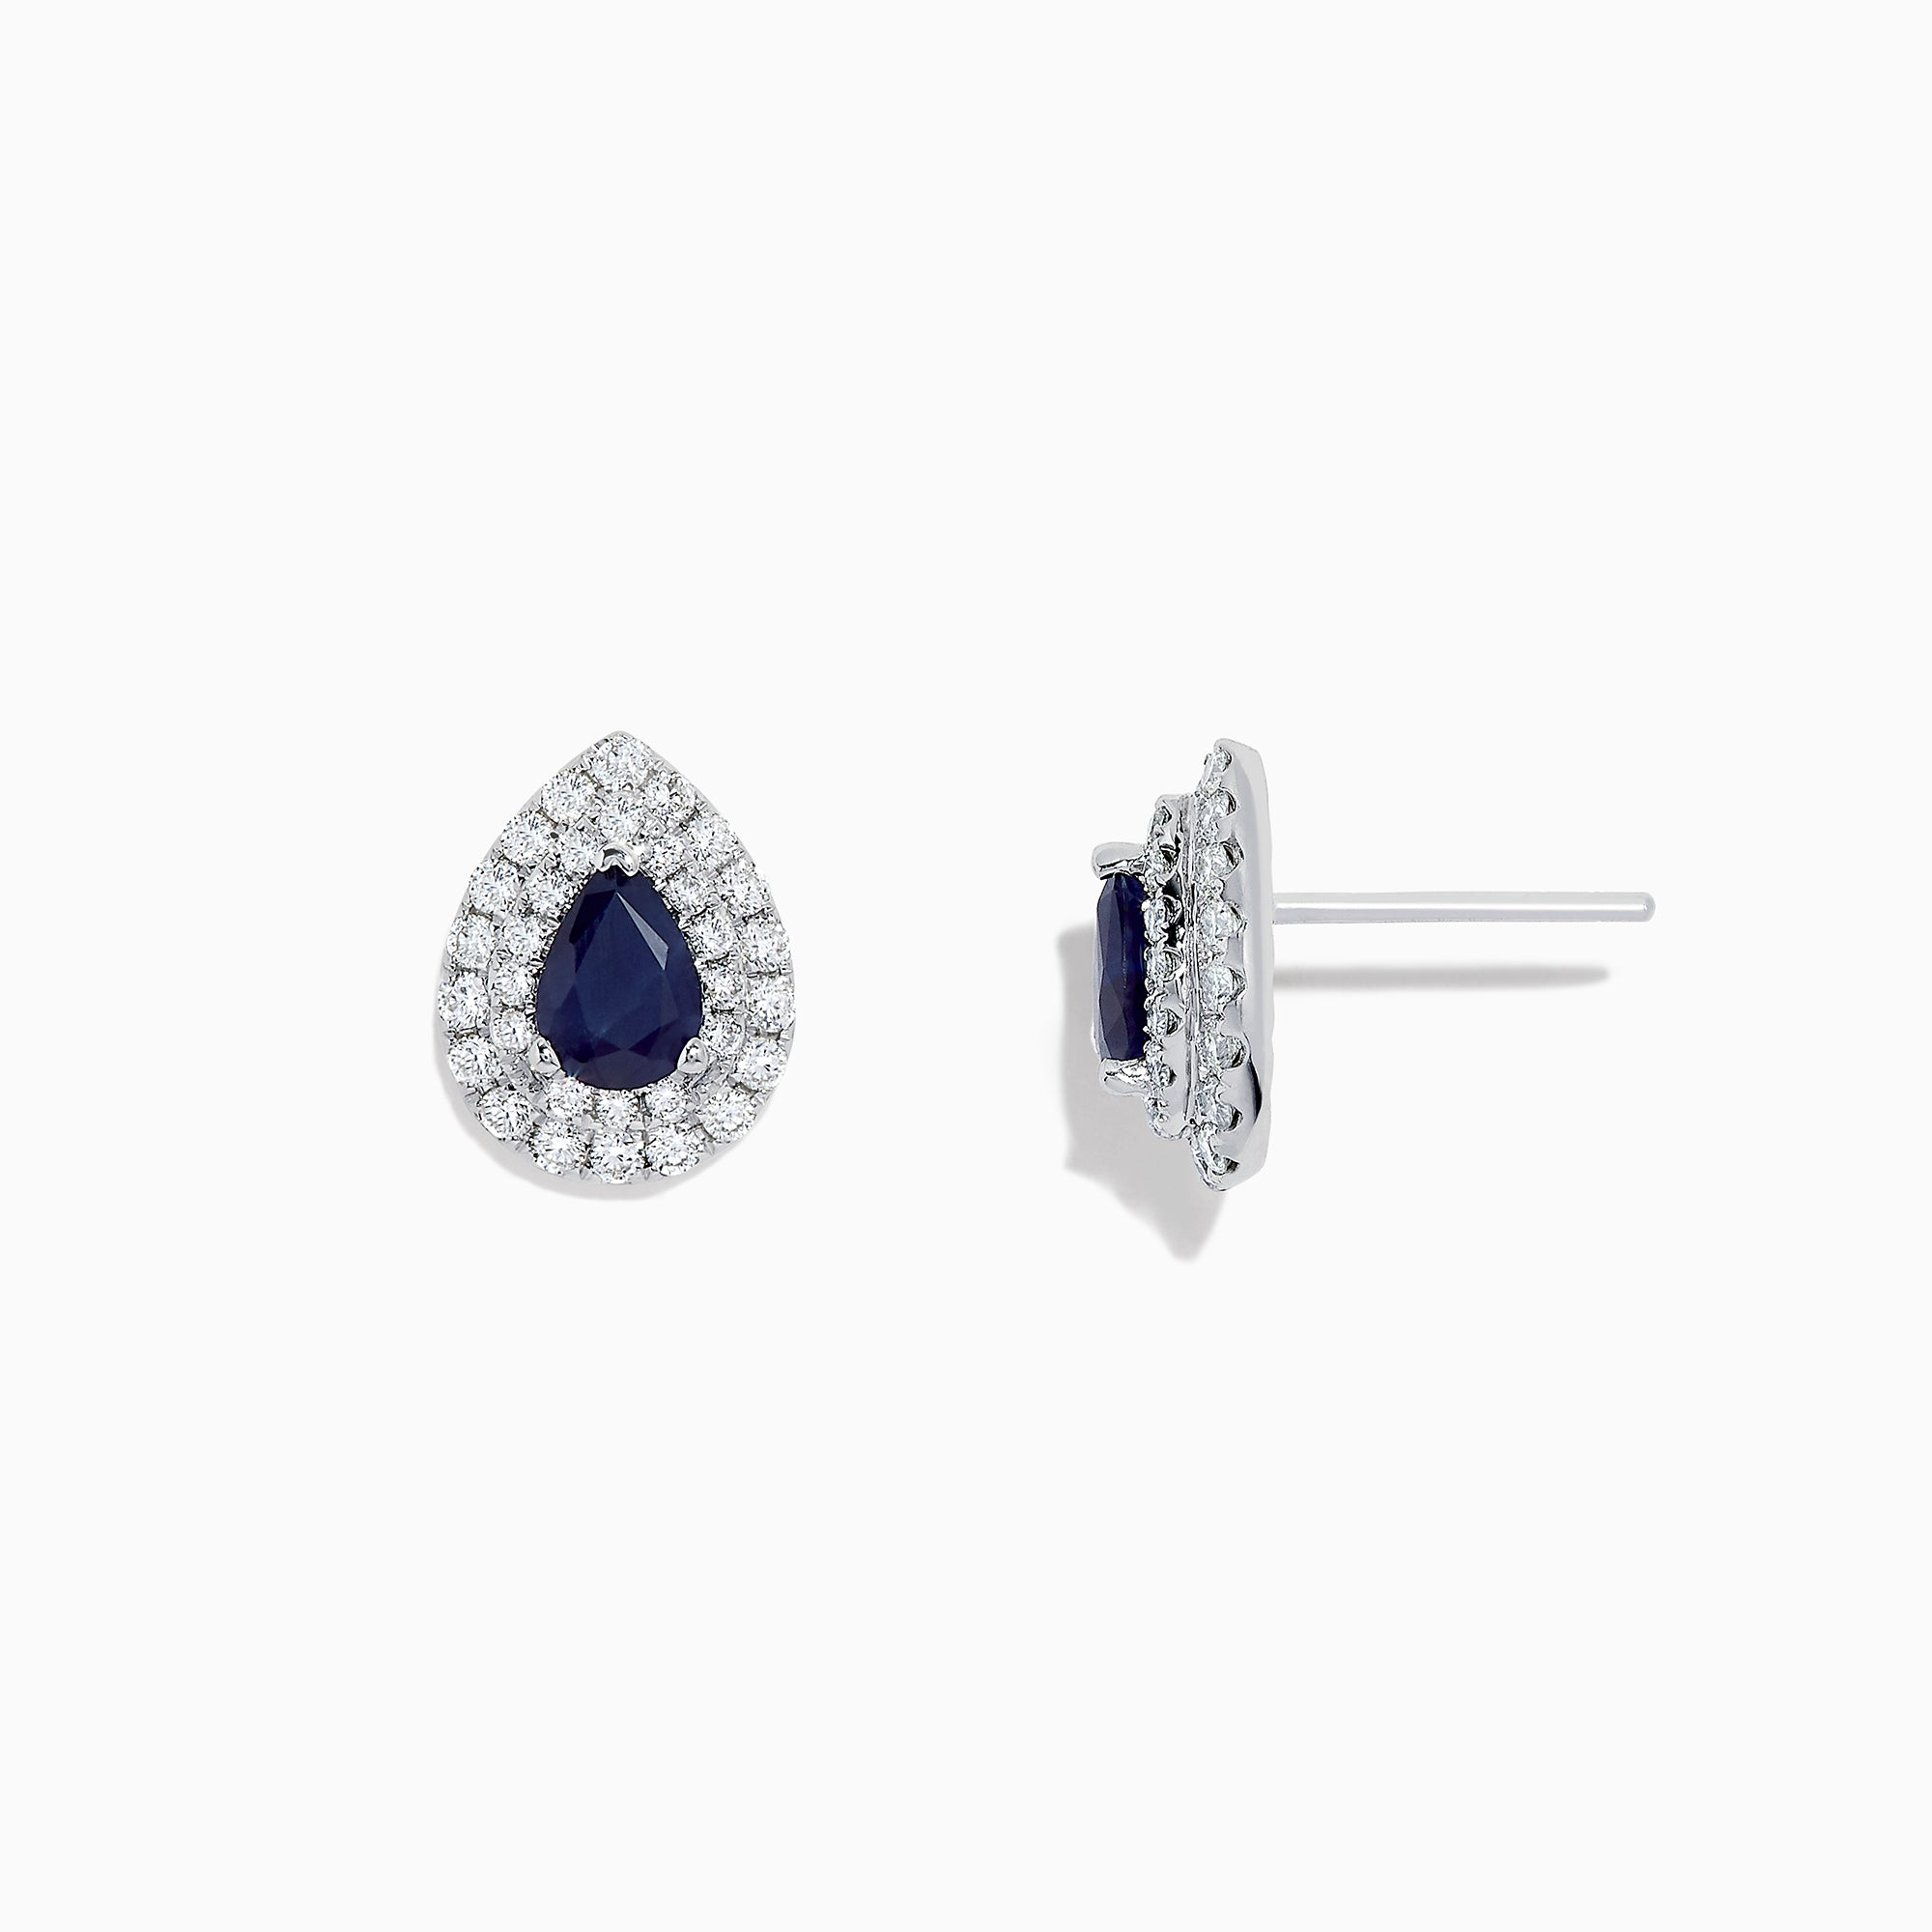 Effy Royale Bleu 14K White Gold Sapphire and Diamond Earrings, 2.23 TCW